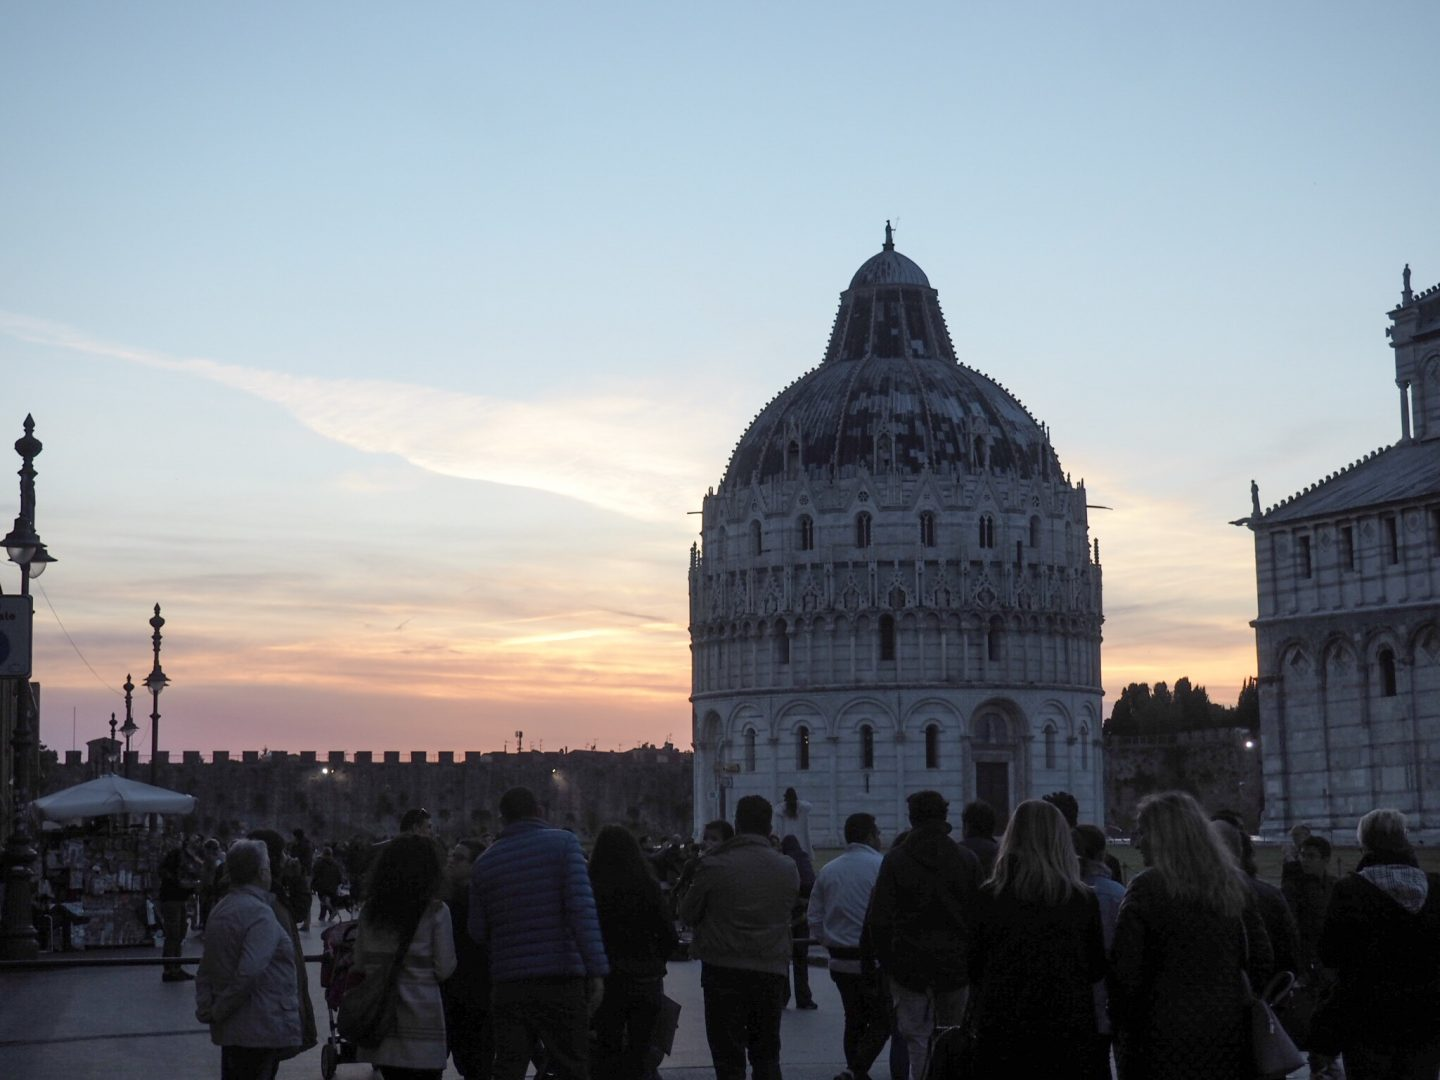 Pisa in the sunset